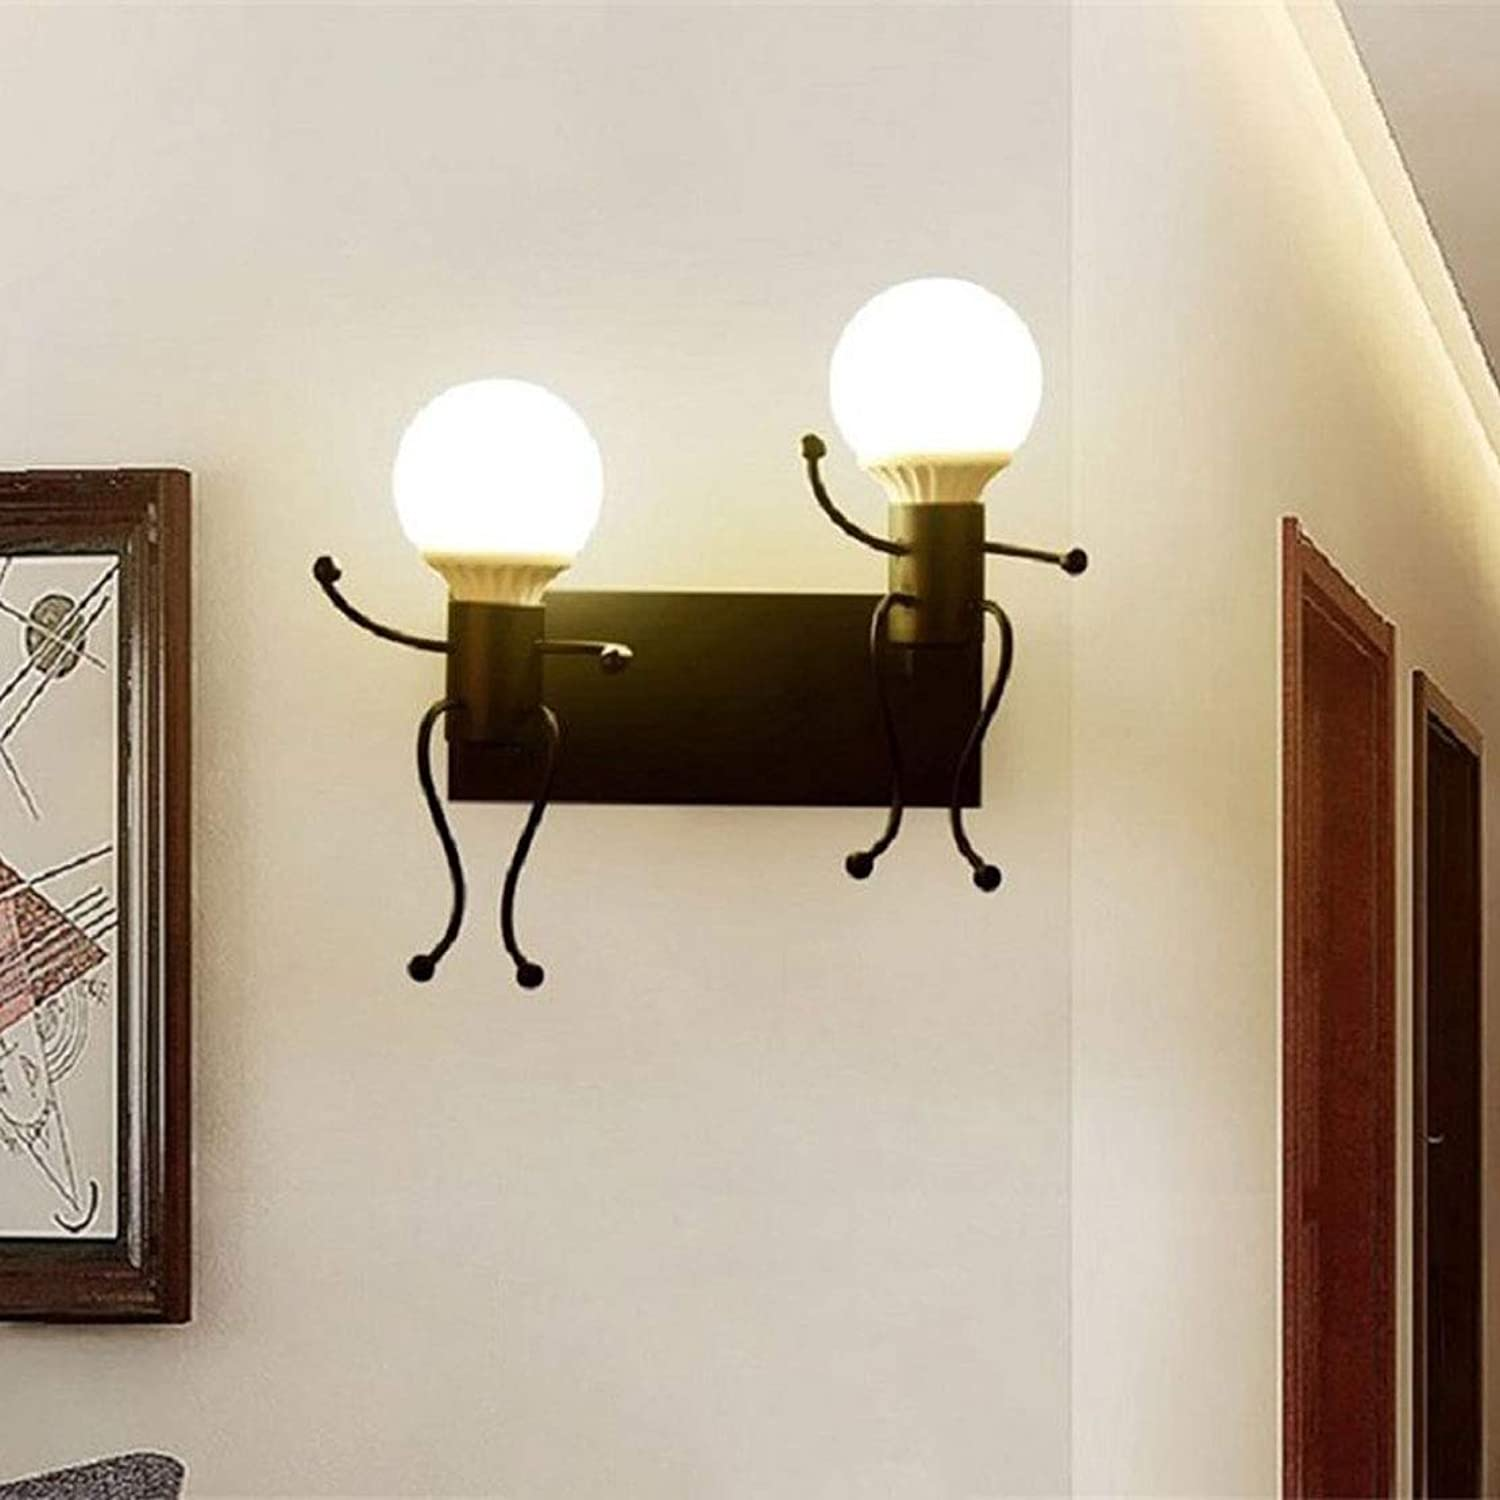 MTGYF Schlafstrauer Wall Lampe Retro Creative Living Room Bracket Lampe (110-220v) Kinderzimmer Persnlichkeits-Personality-Wand-Lampe Lightingwrought Iron Villain Wandlampe 33  26cm Beleuchtung